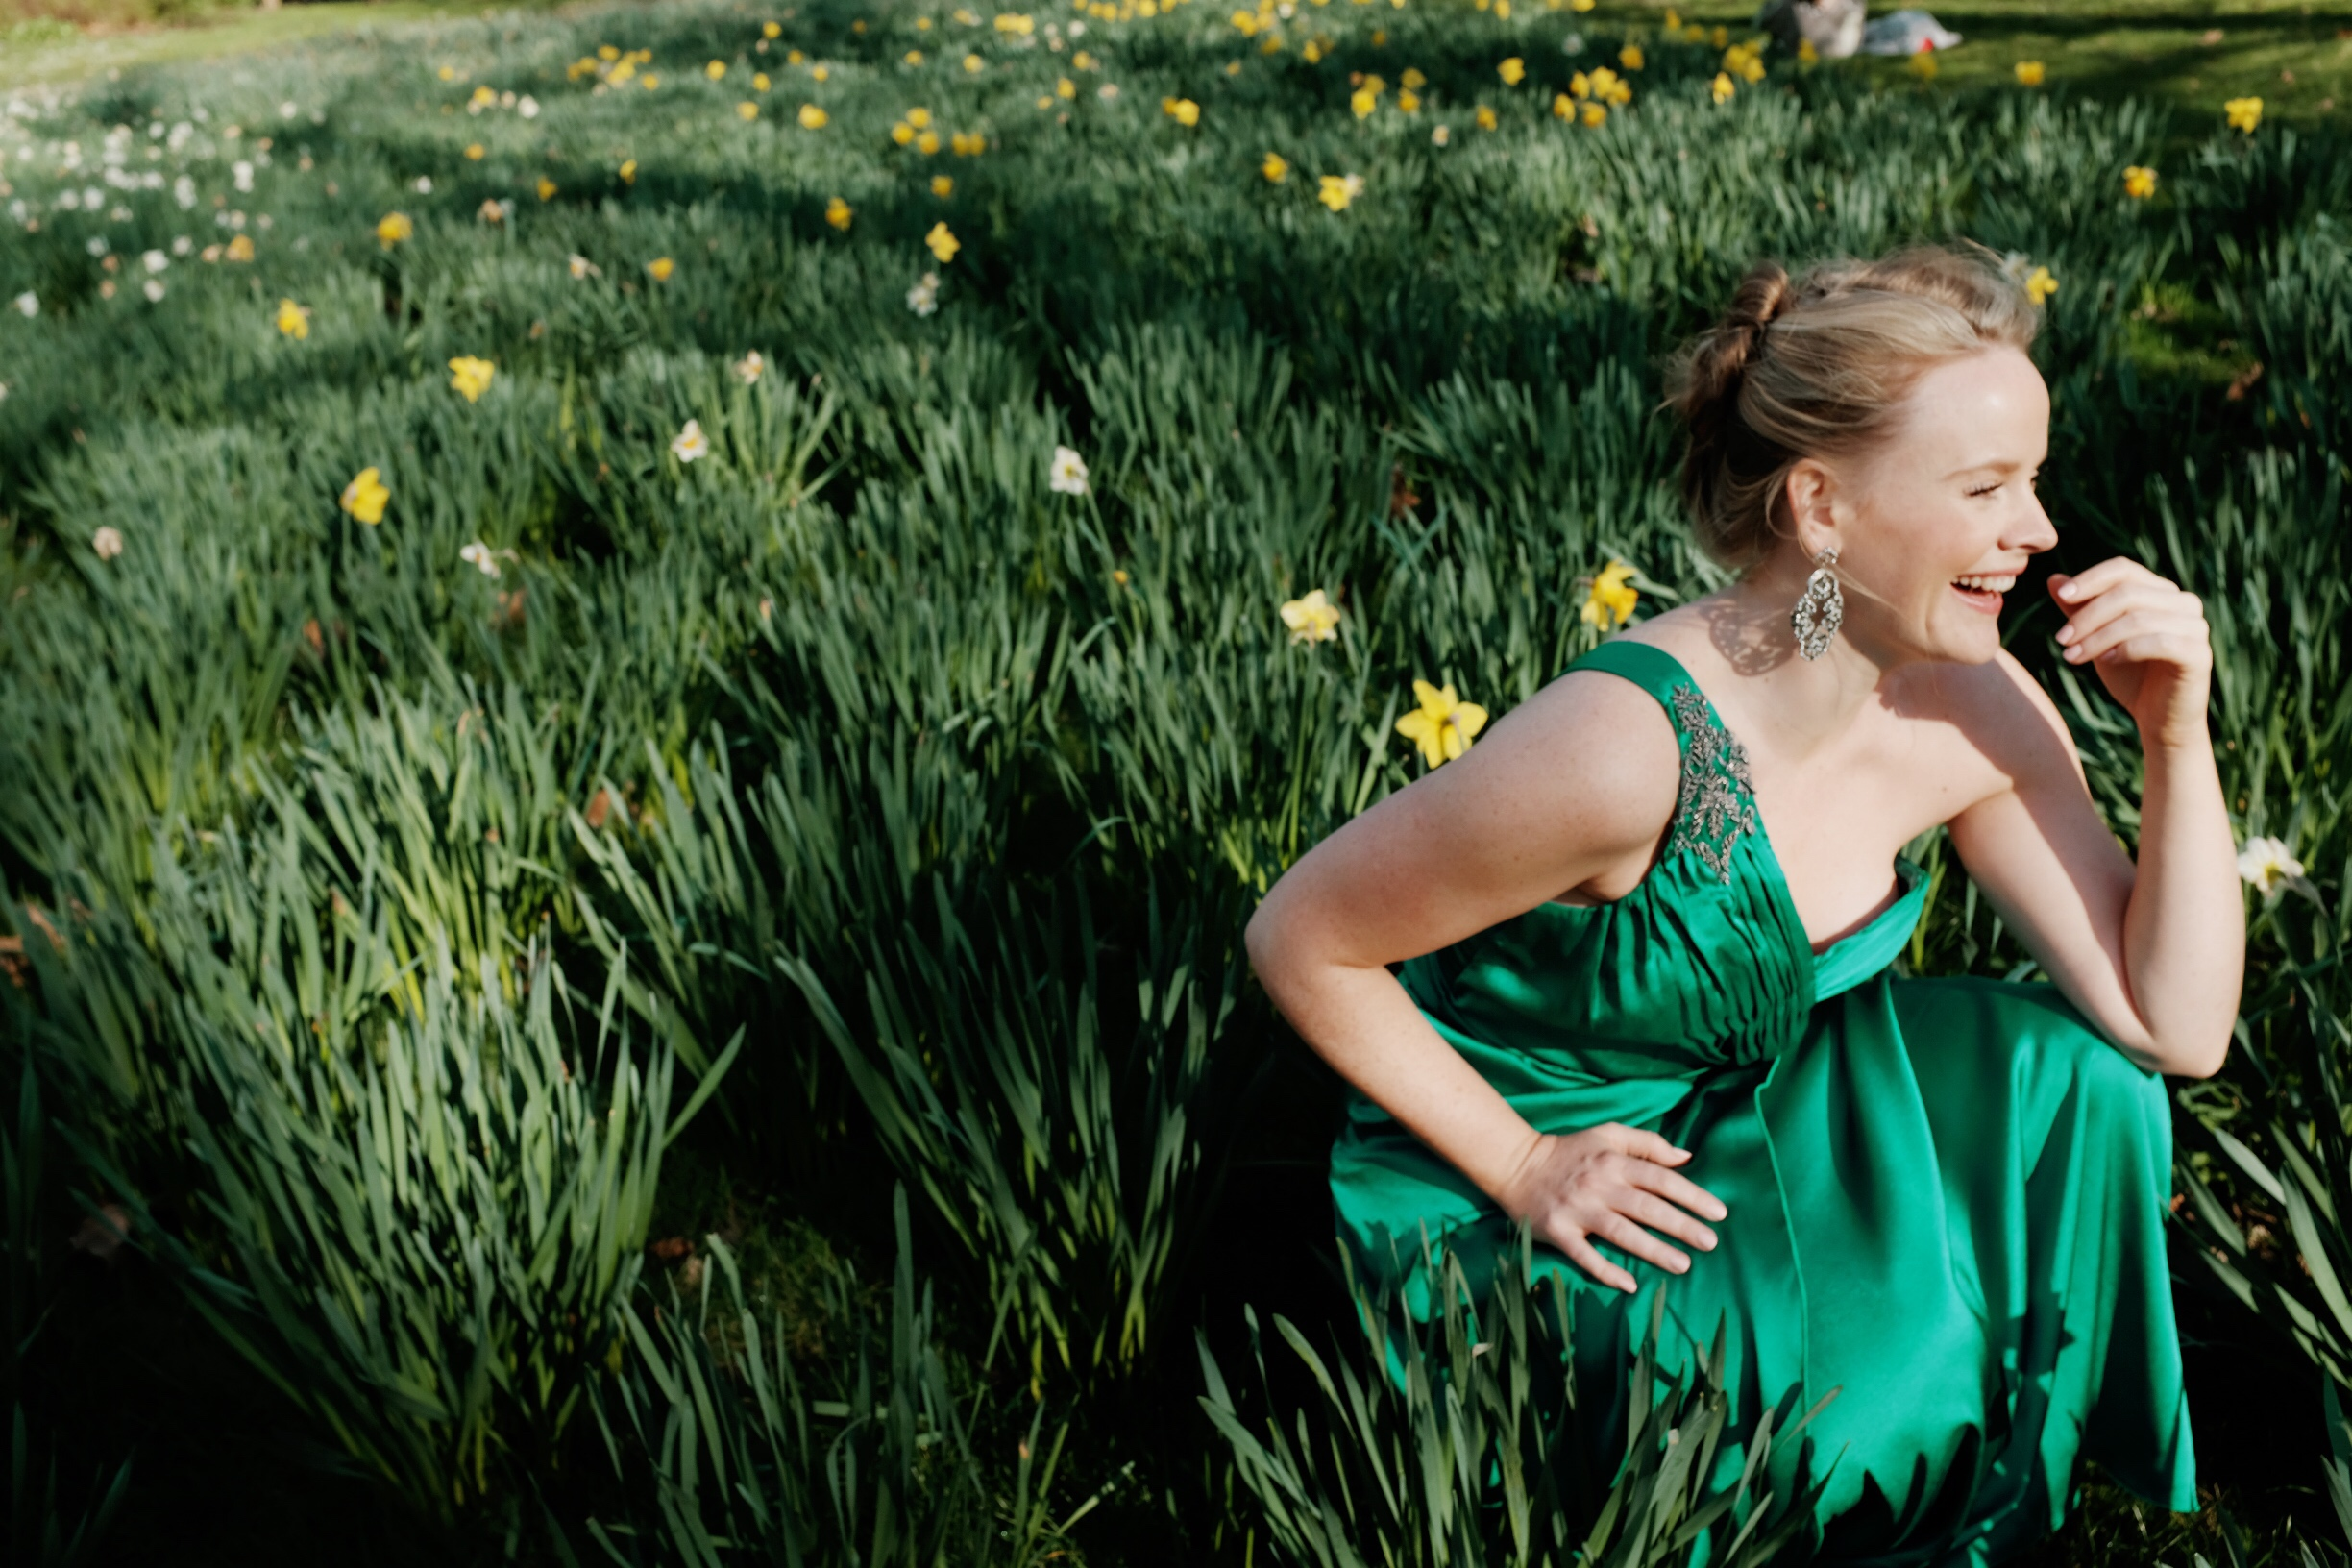 Lizzie Holmes, green dress smile.JPG